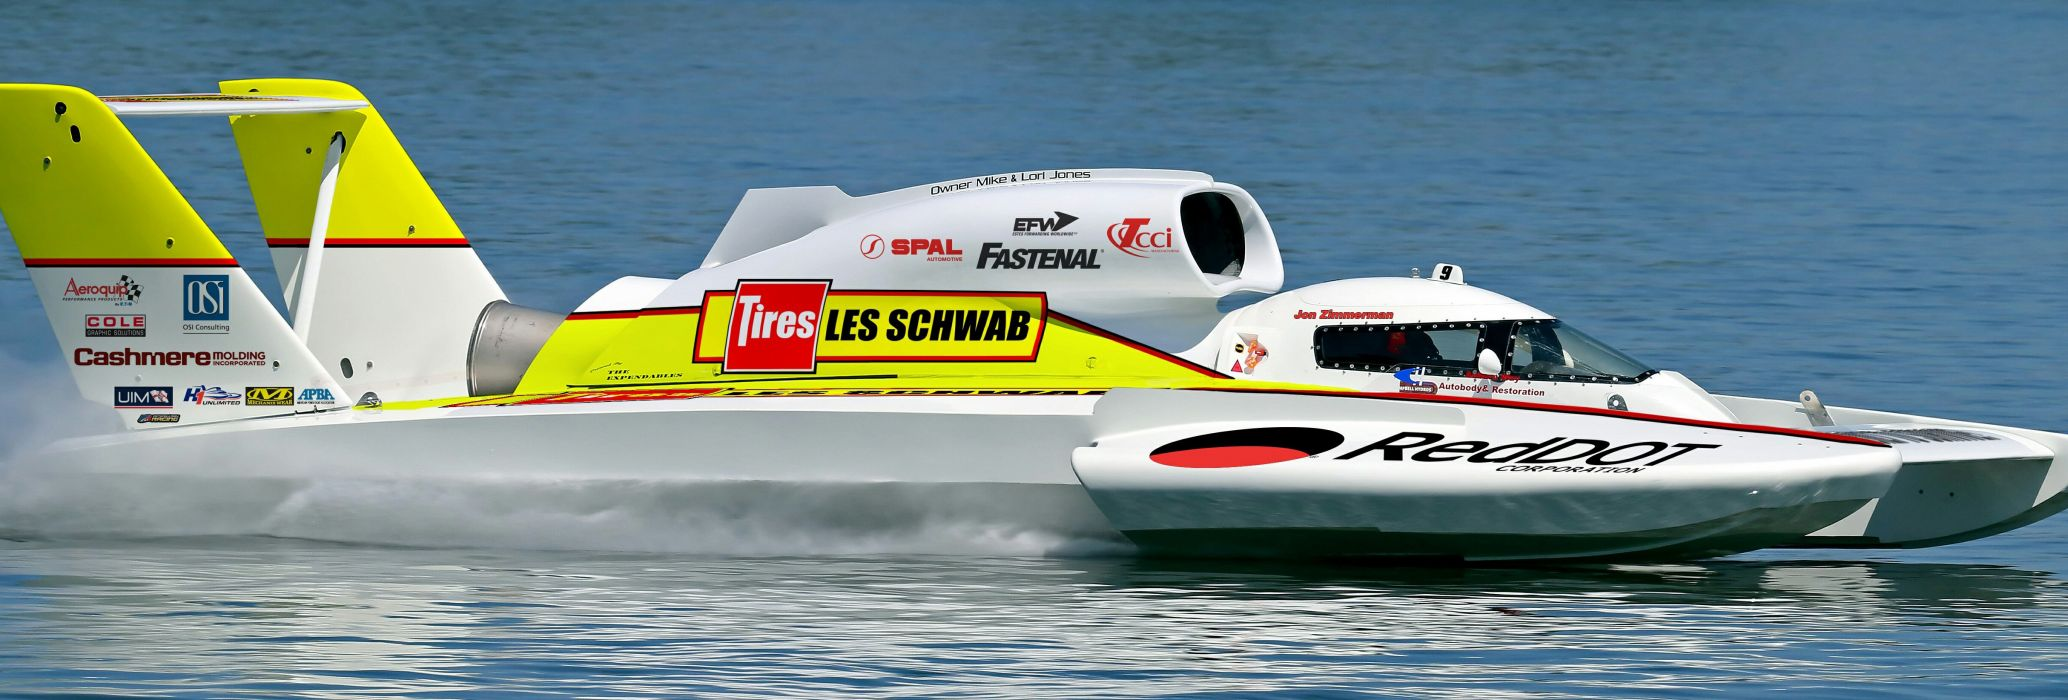 UNLIMITED-HYDROPLANE race racing boat ship unlimited hydroplane jet (12) wallpaper